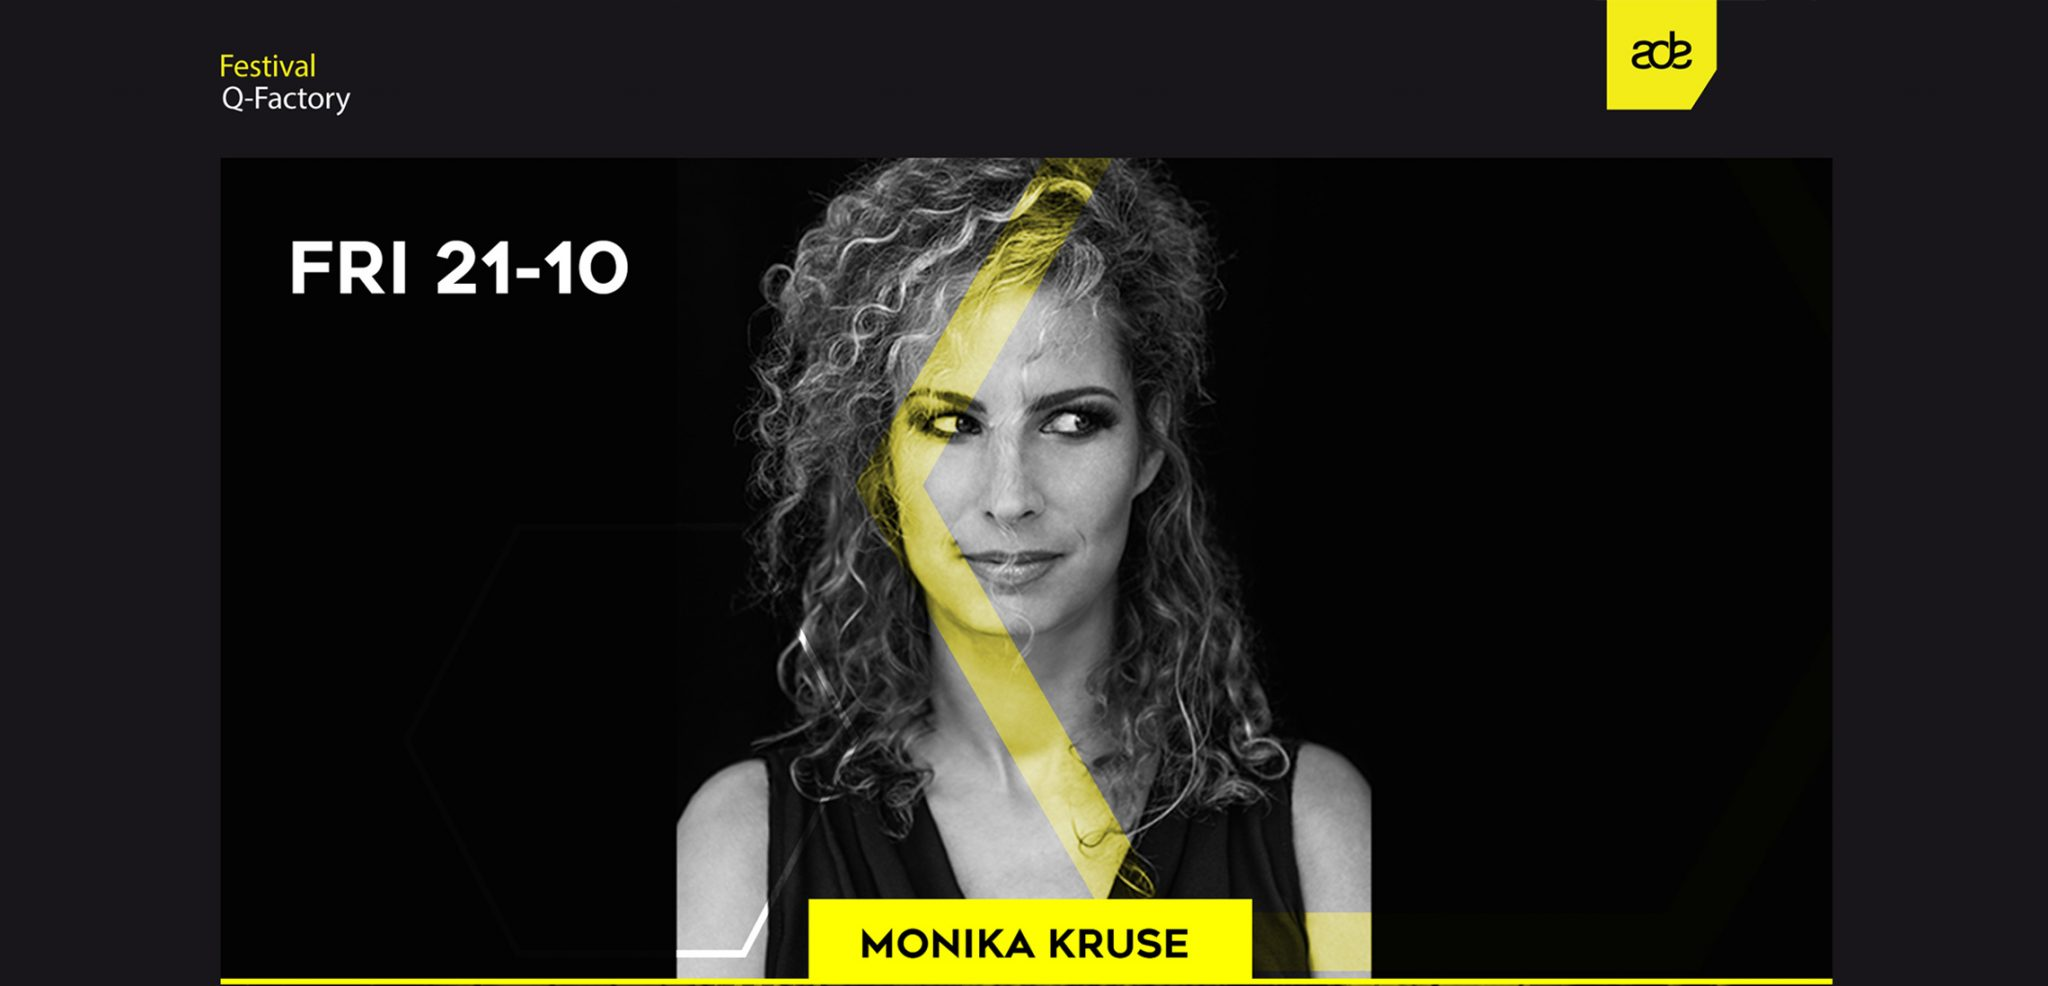 Monika Kruse brings Terminal M label party back to ADE in collaboration with Tronic